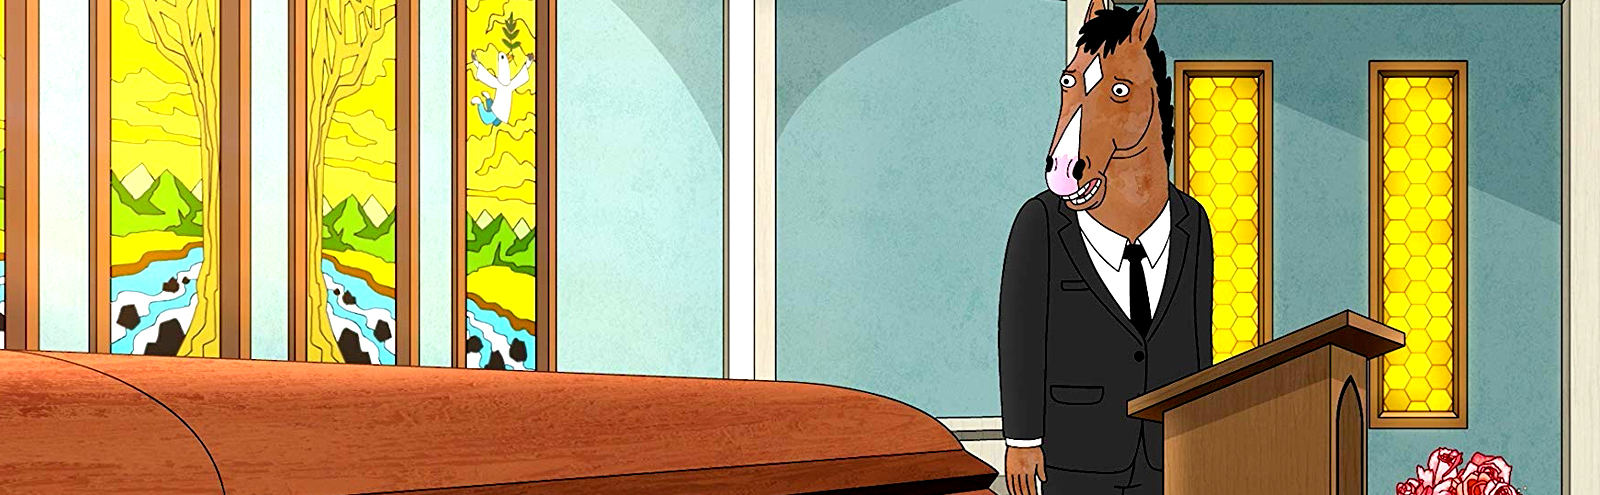 The Five Stages Of Saying Goodbye To 'BoJack Horseman' (Or Any Favorite Show)